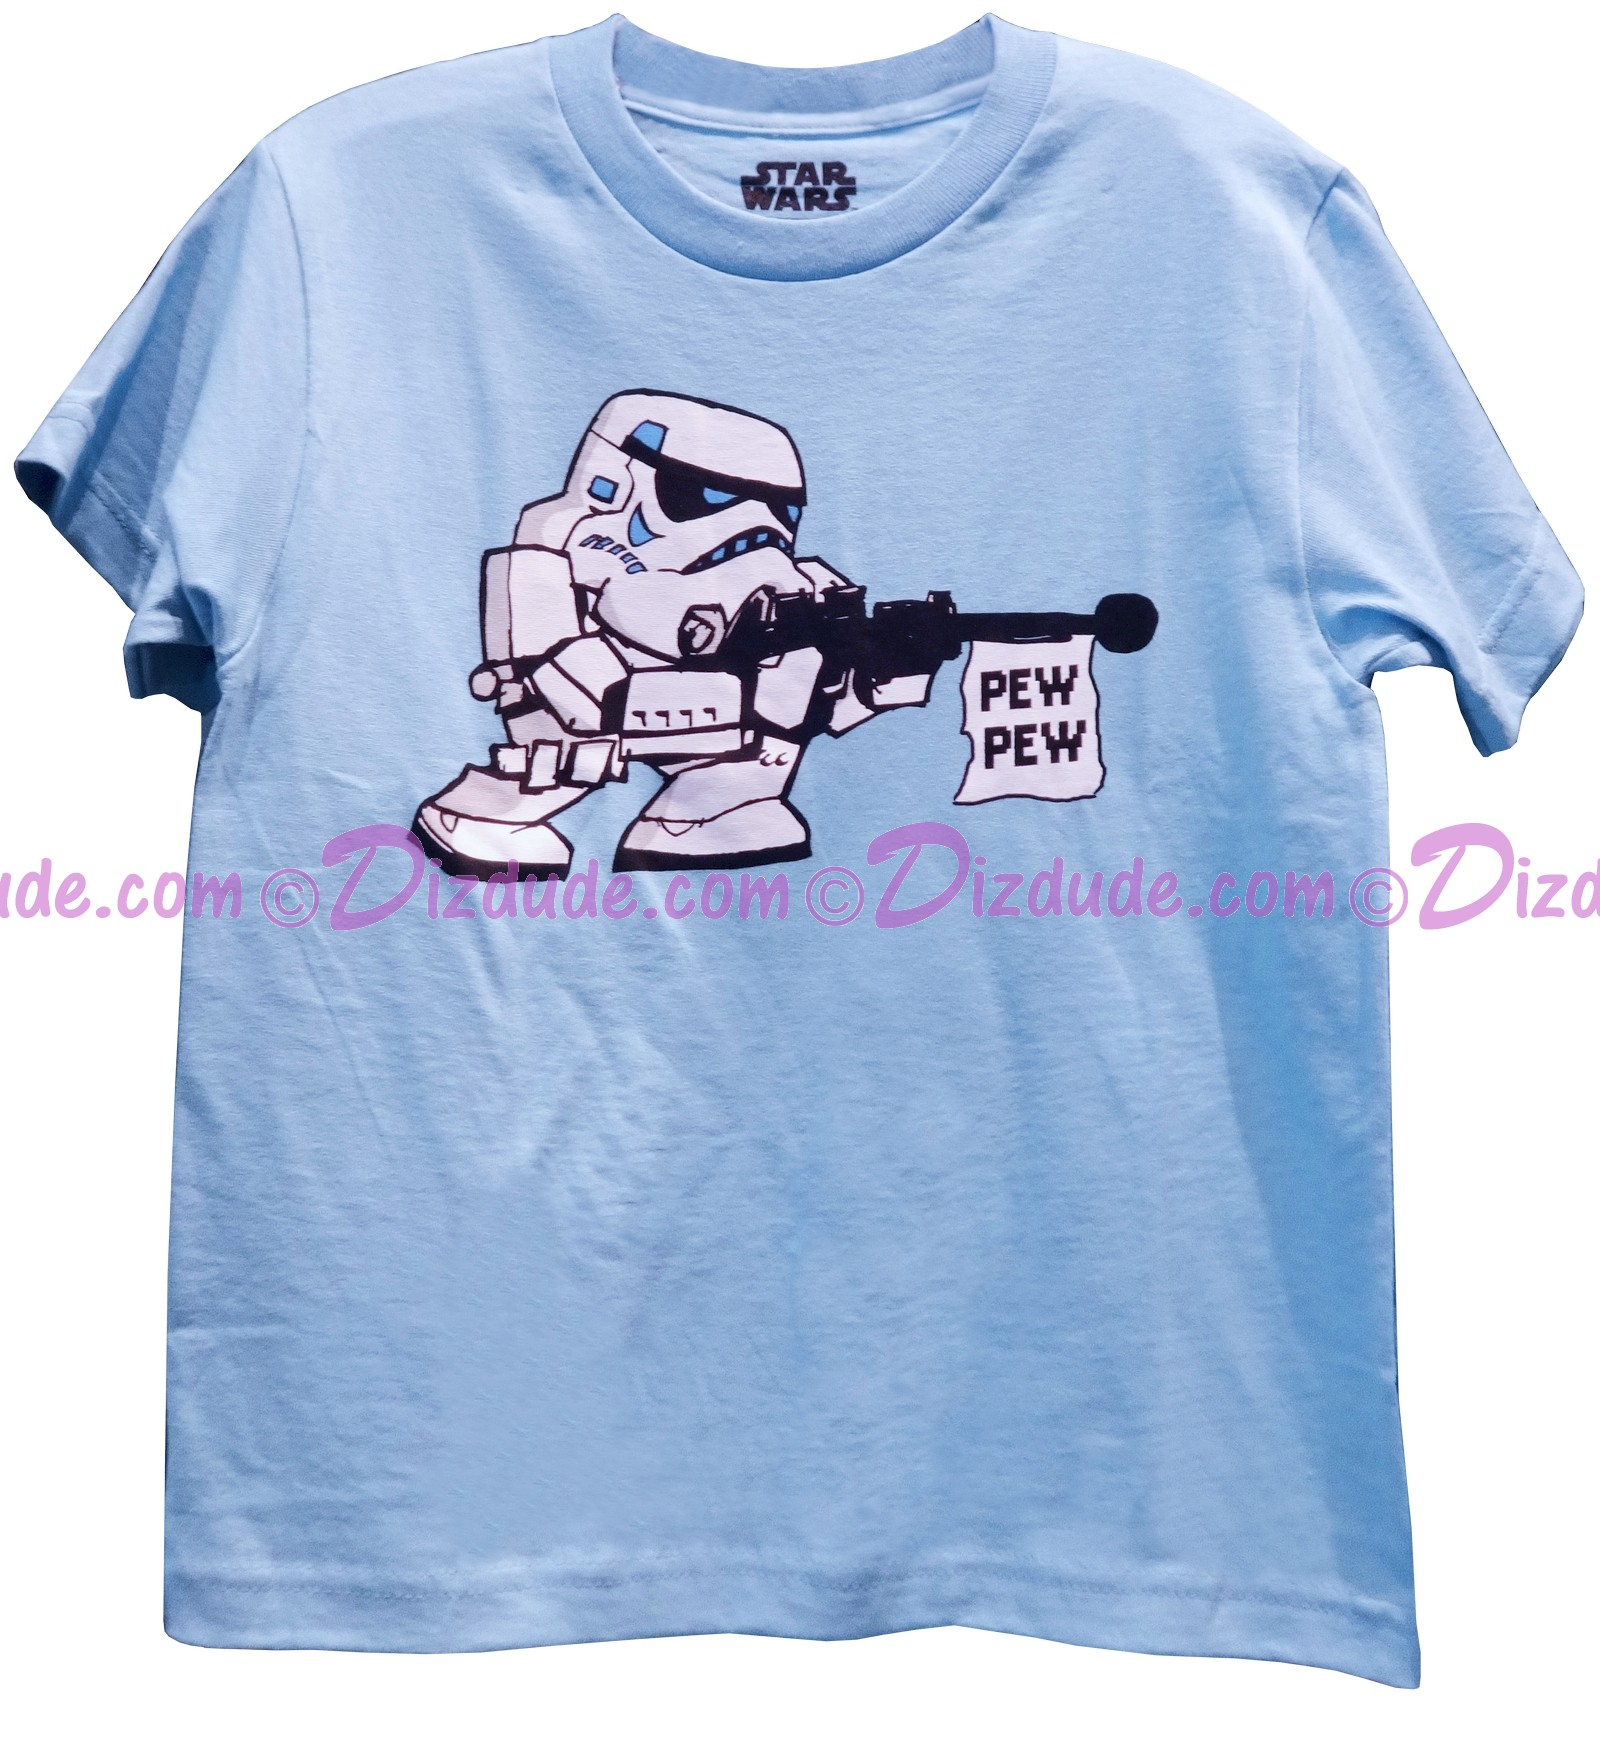 Disney Star Wars Stormtrooper Pew Pew Youth Tshirt